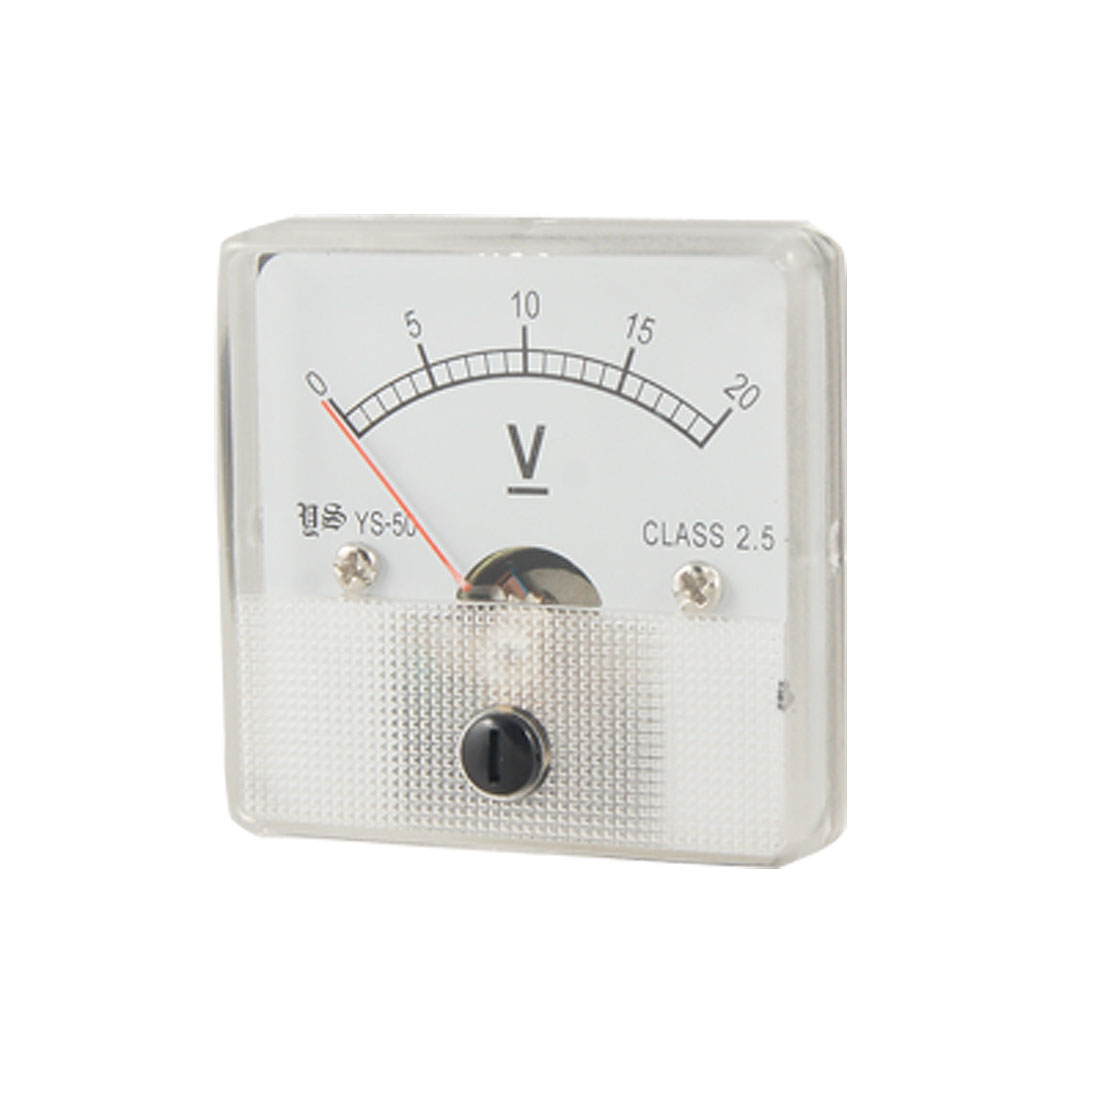 DC 0-20V Fine Tuning Dial Voltmeter Voltage Panel Meter